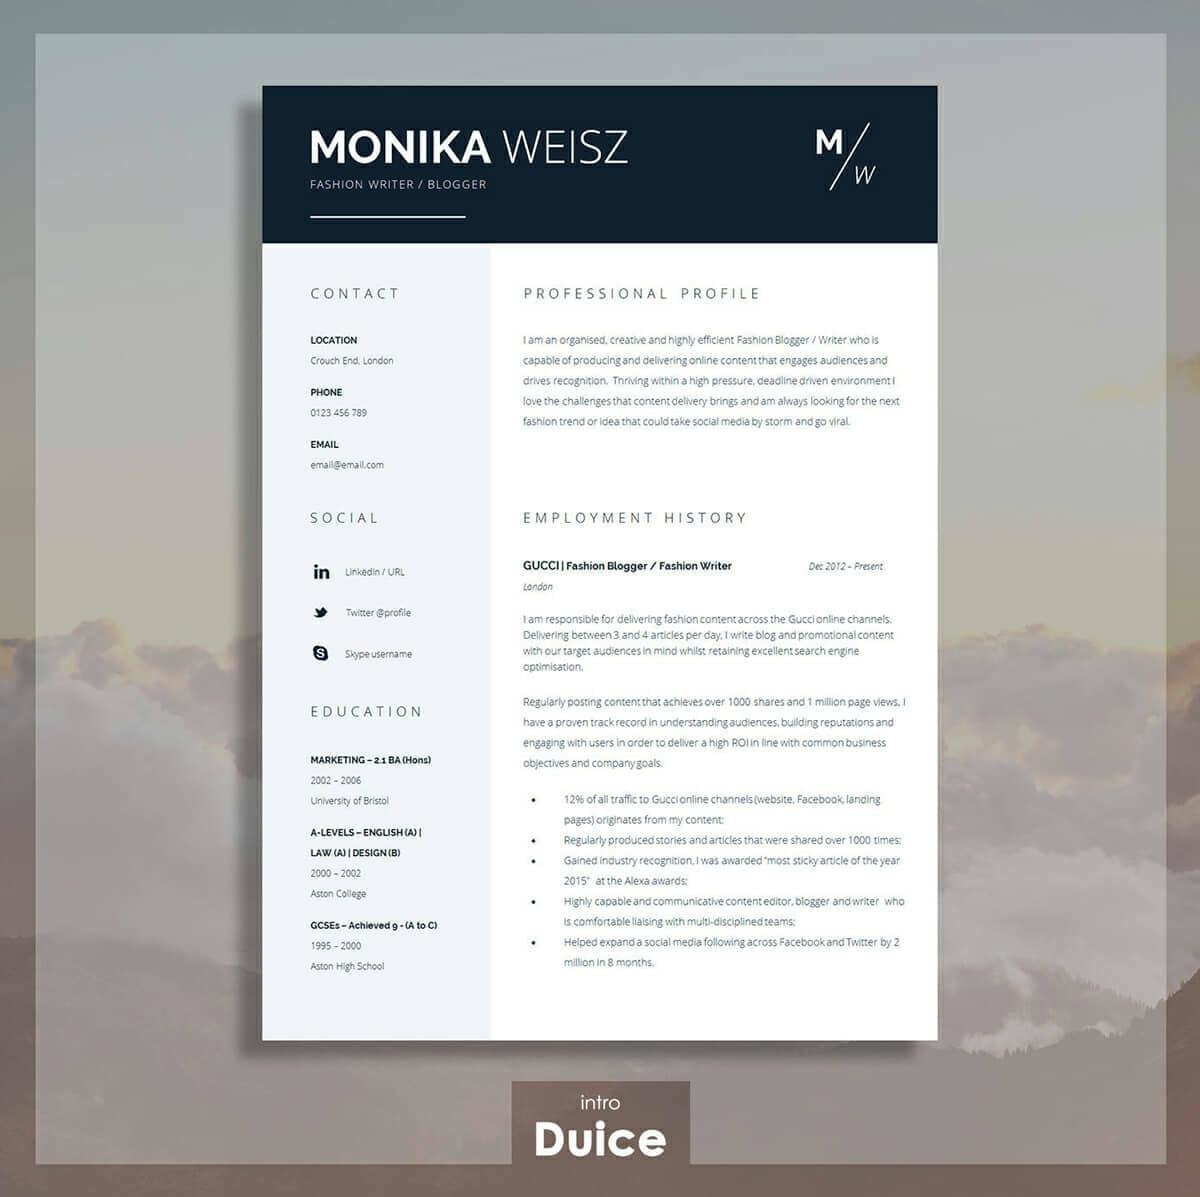 Best Resume Templates: 15 Examples to Download & Use Right Away